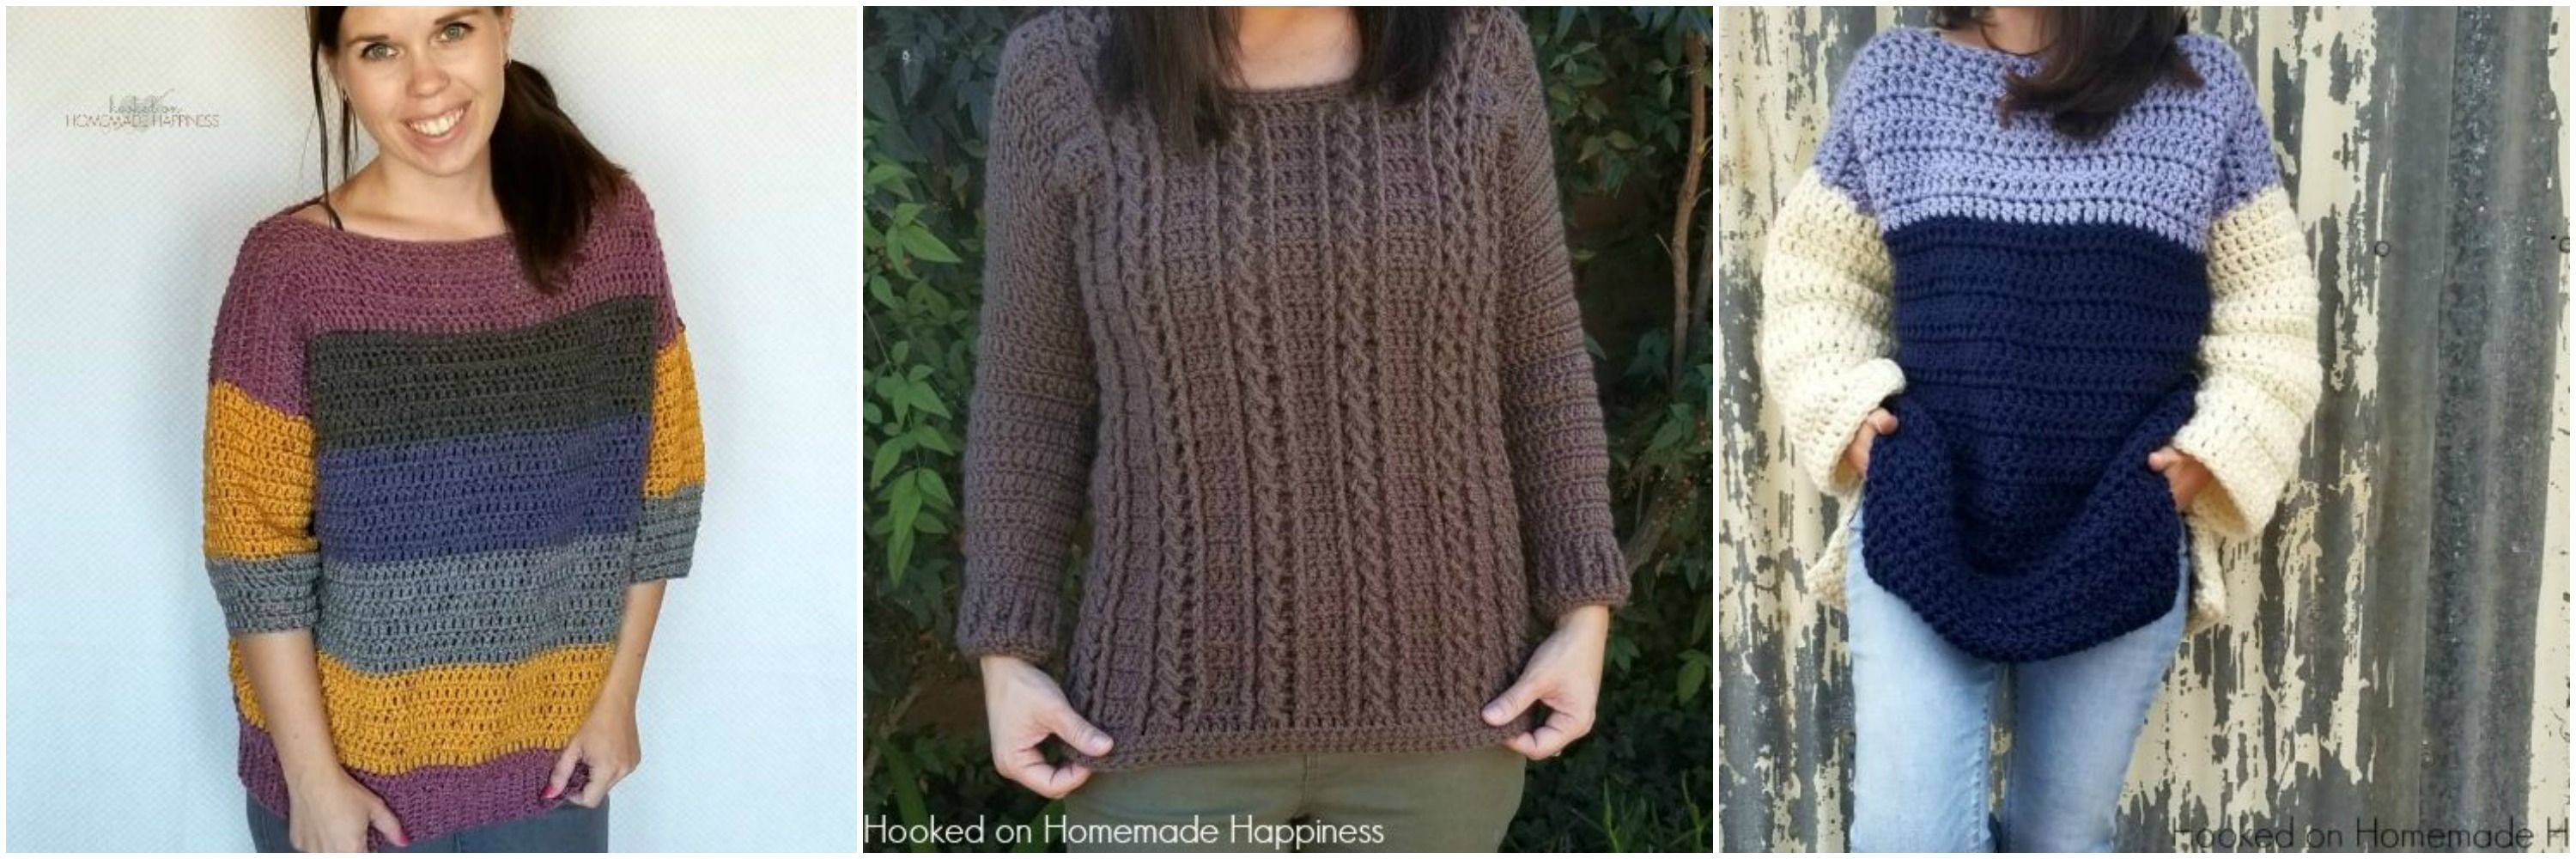 3b59dc54c Simple Crochet Sweater Pattern - Hooked on Homemade Happiness